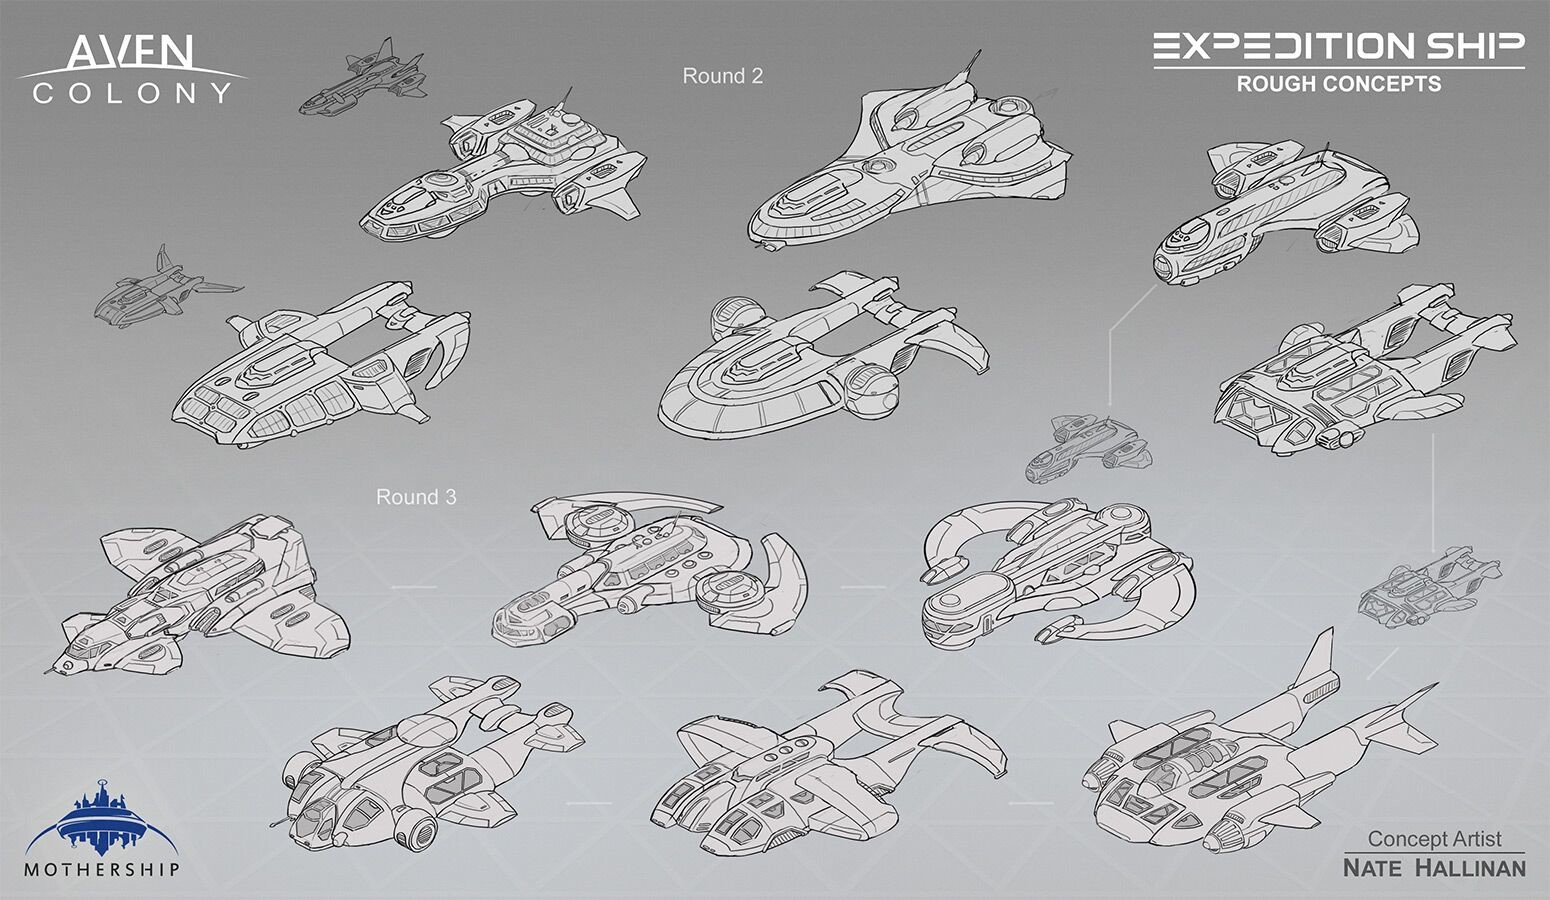 Rounds 2 & 3 for the rough concept designs of the Expedition Ship.